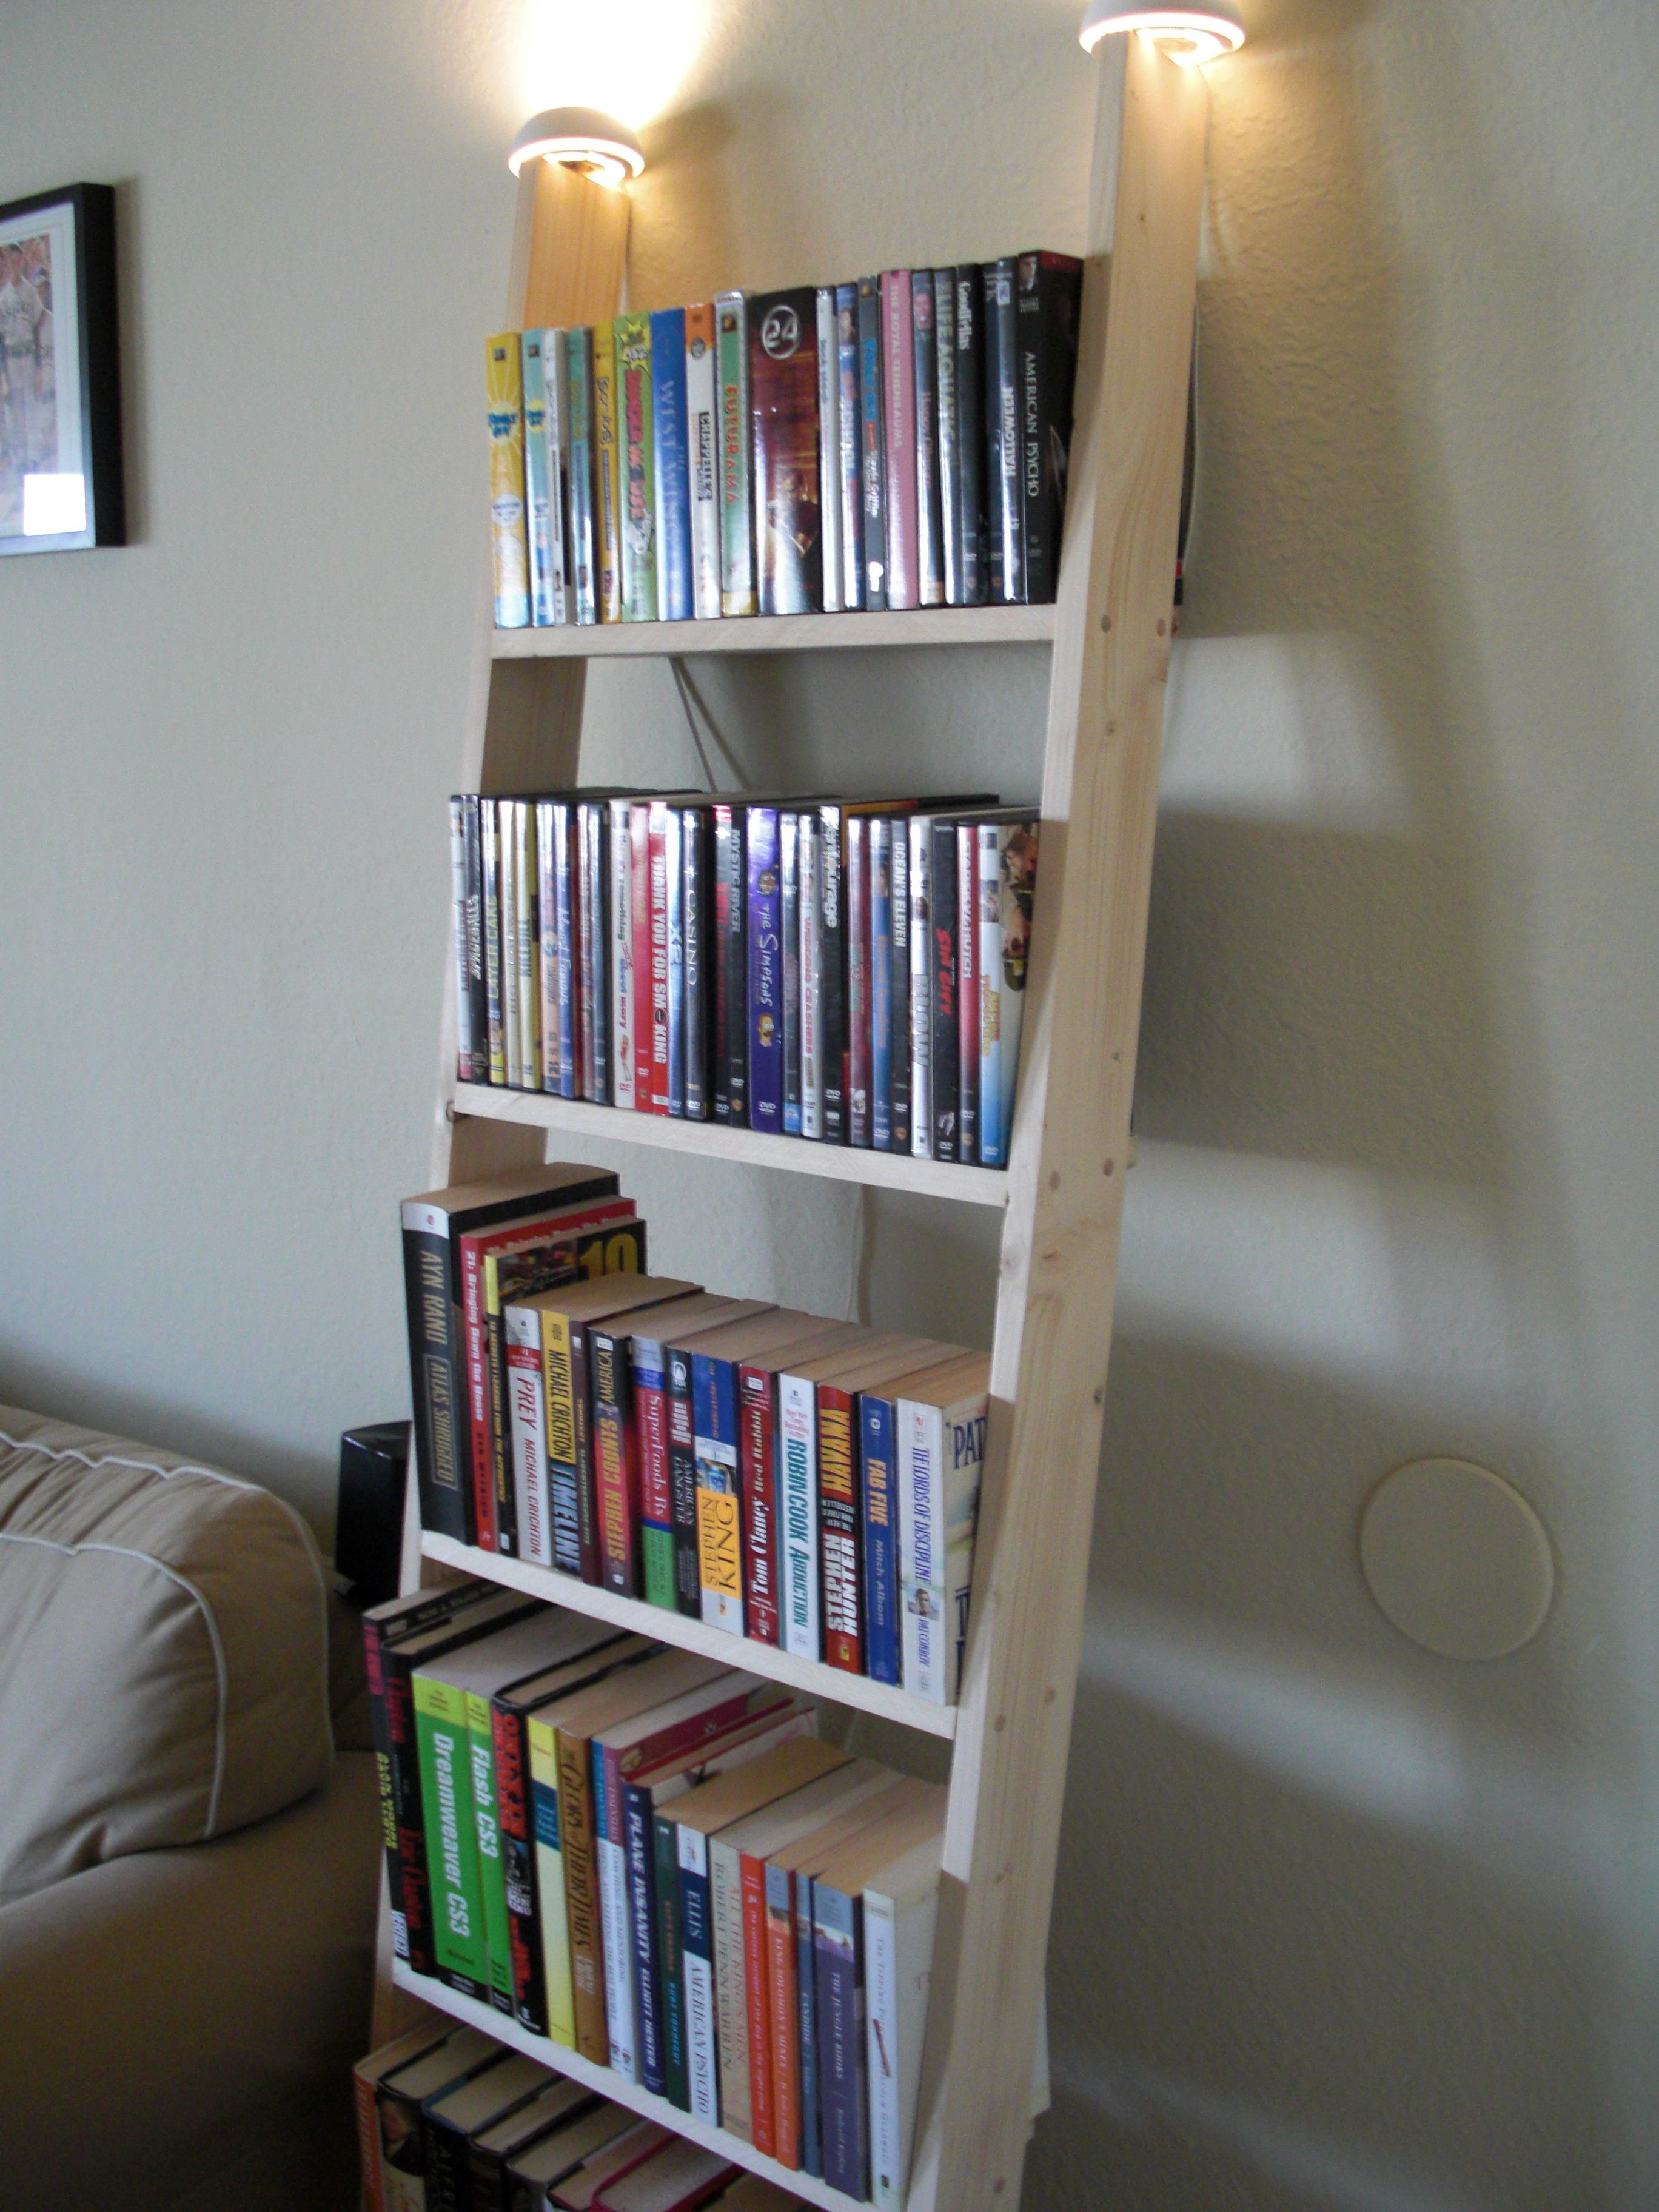 one natural acacia wall becomes durable skogsta concealed shelves mounting to material shelf and hardware book the a wood ikea with solid is pin thanks